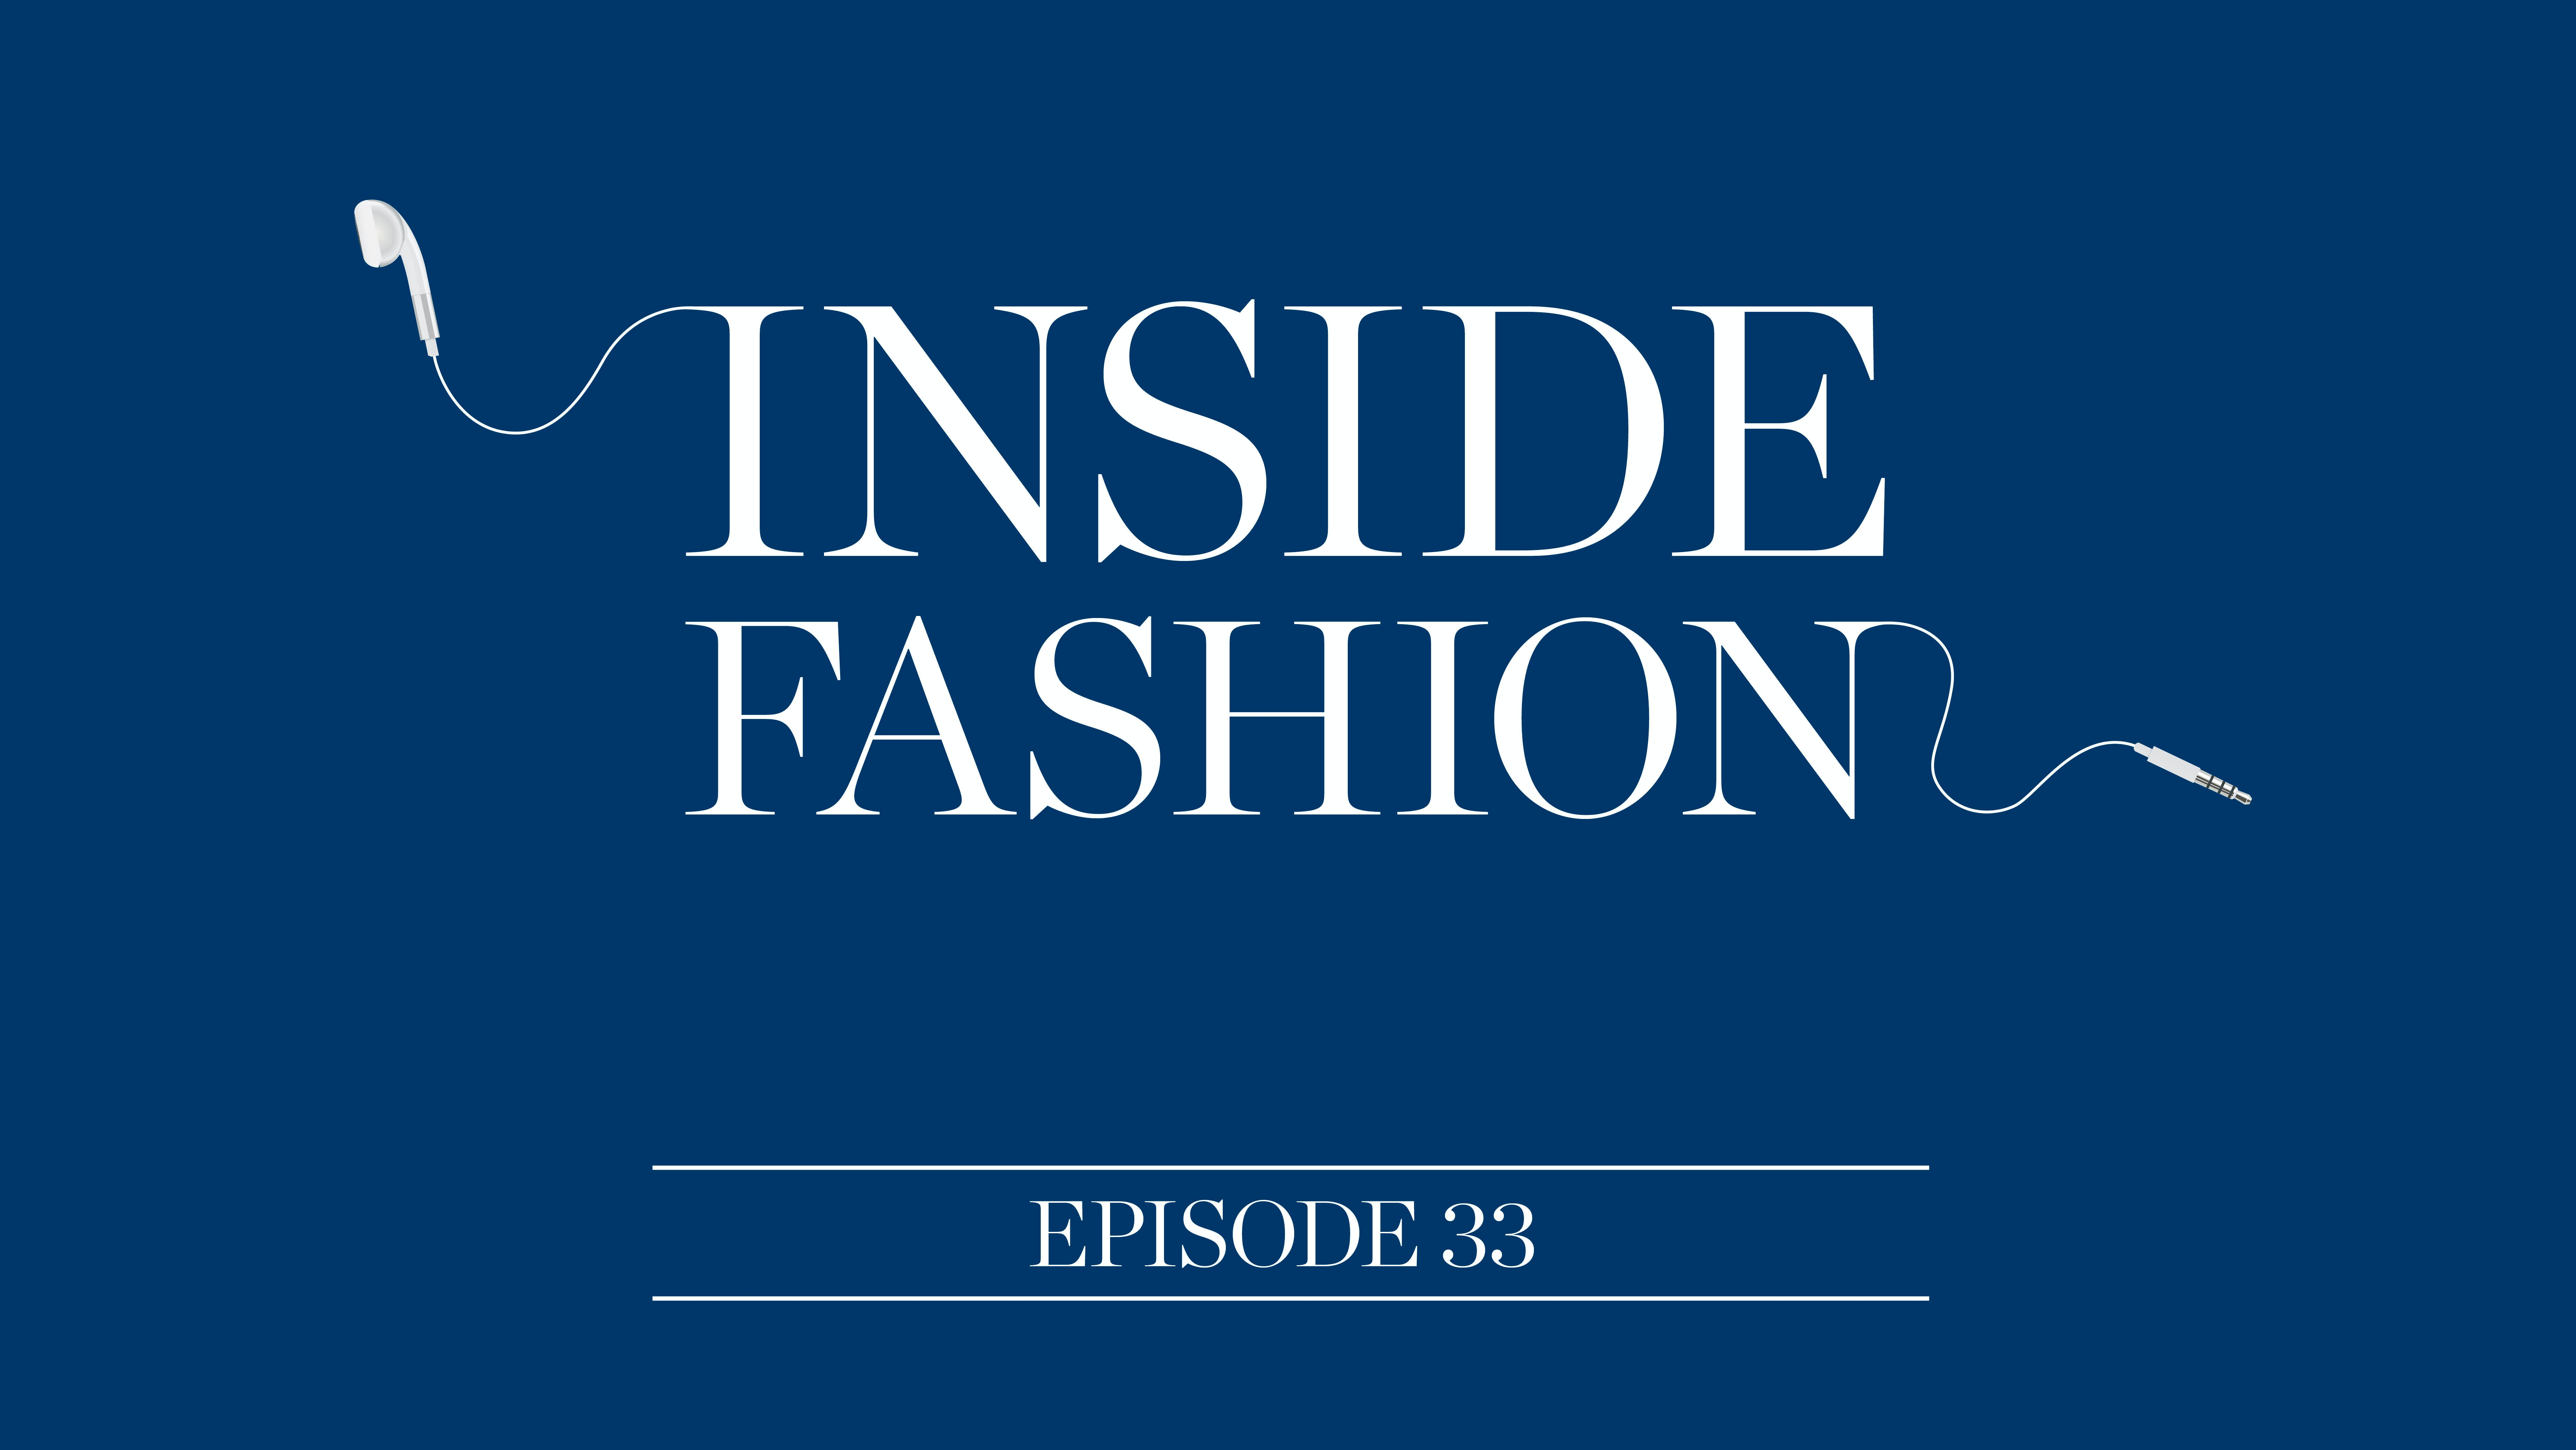 The BoF Podcast: Inside Fashion with Imran Amed and Musa Tariq